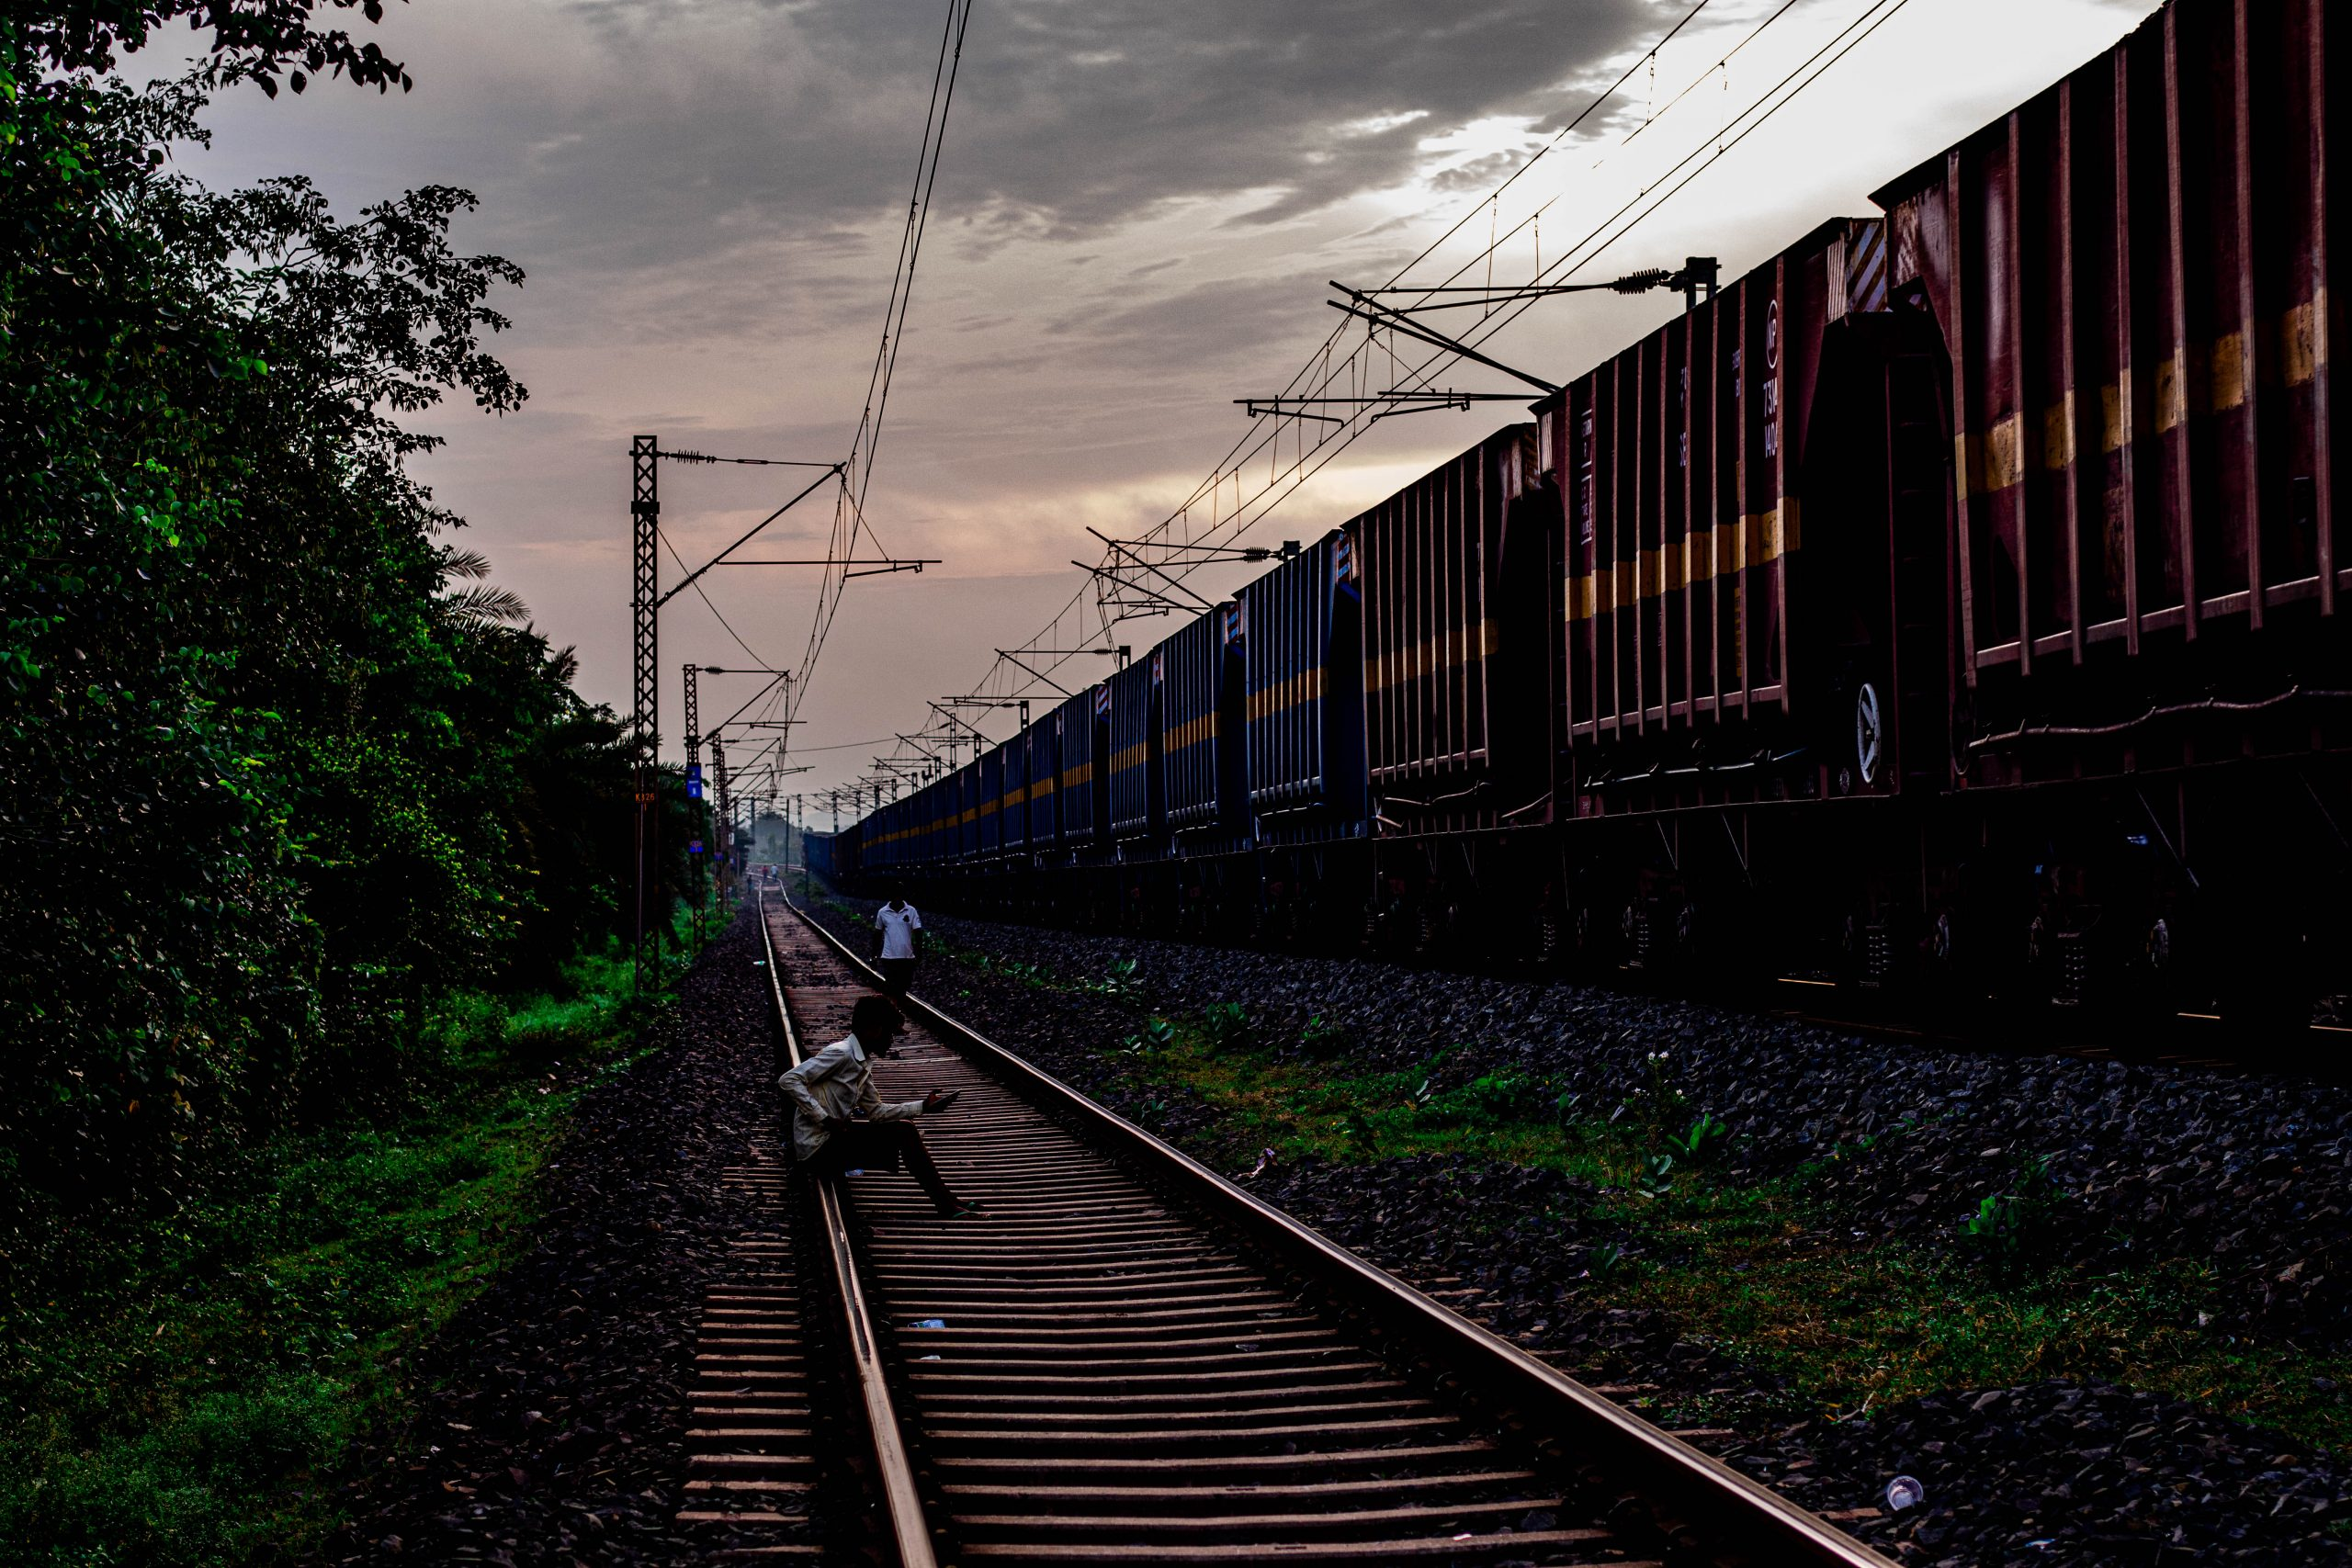 A freight train passing